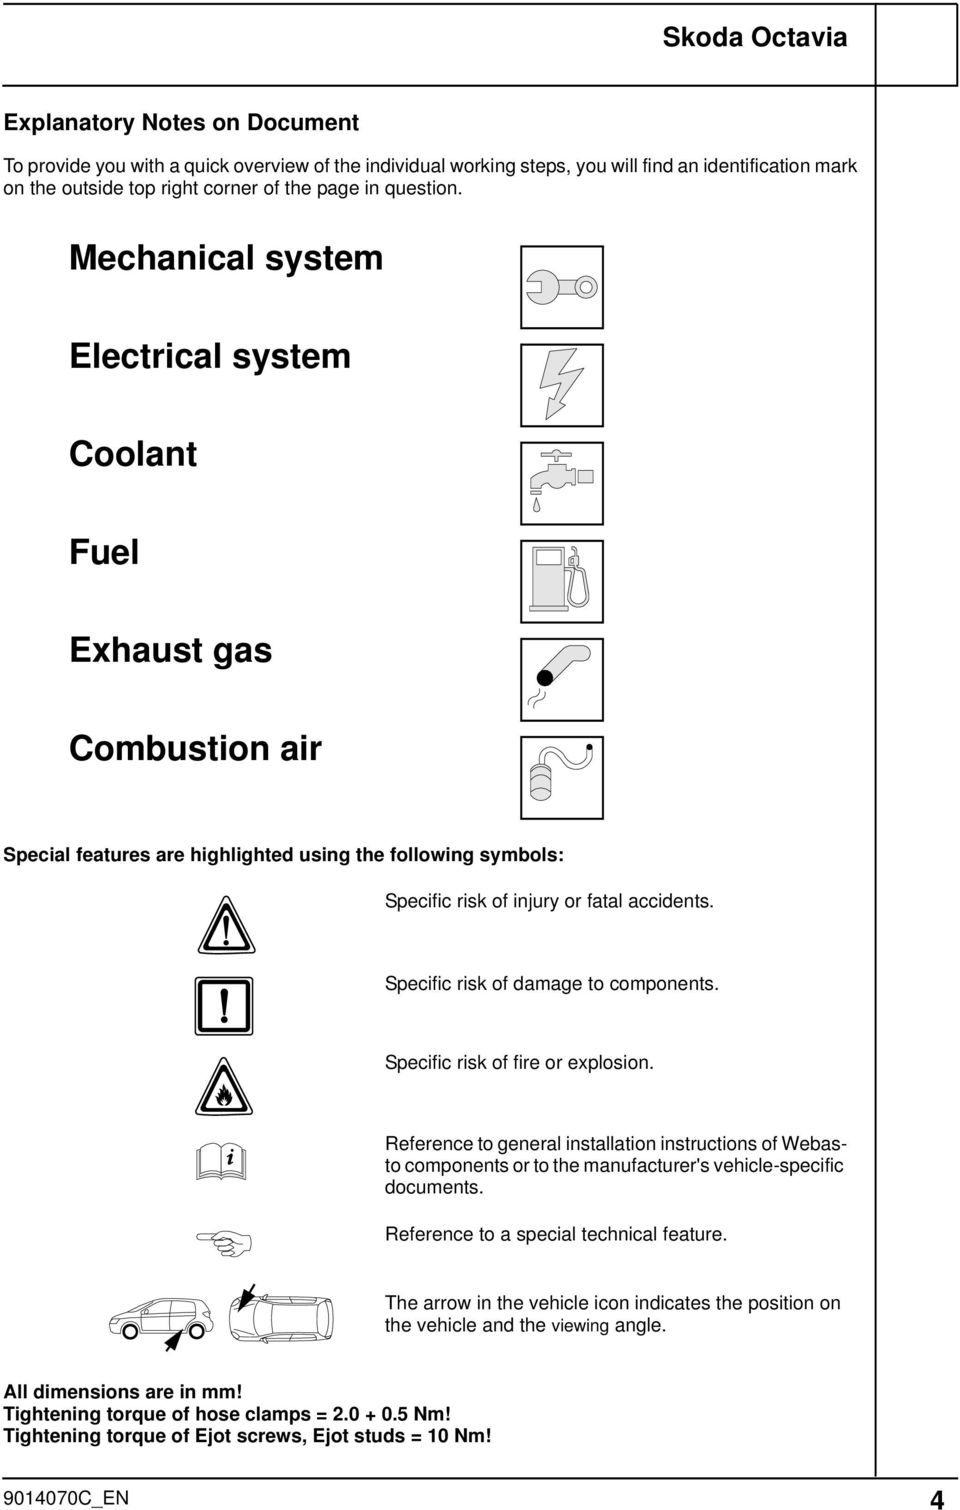 Always Follow All Webasto Installation And Repair Instructions Skoda Rapid Fuse Box Diagram Specific Risk Of Damage To Components Fire Or Explosion Reference